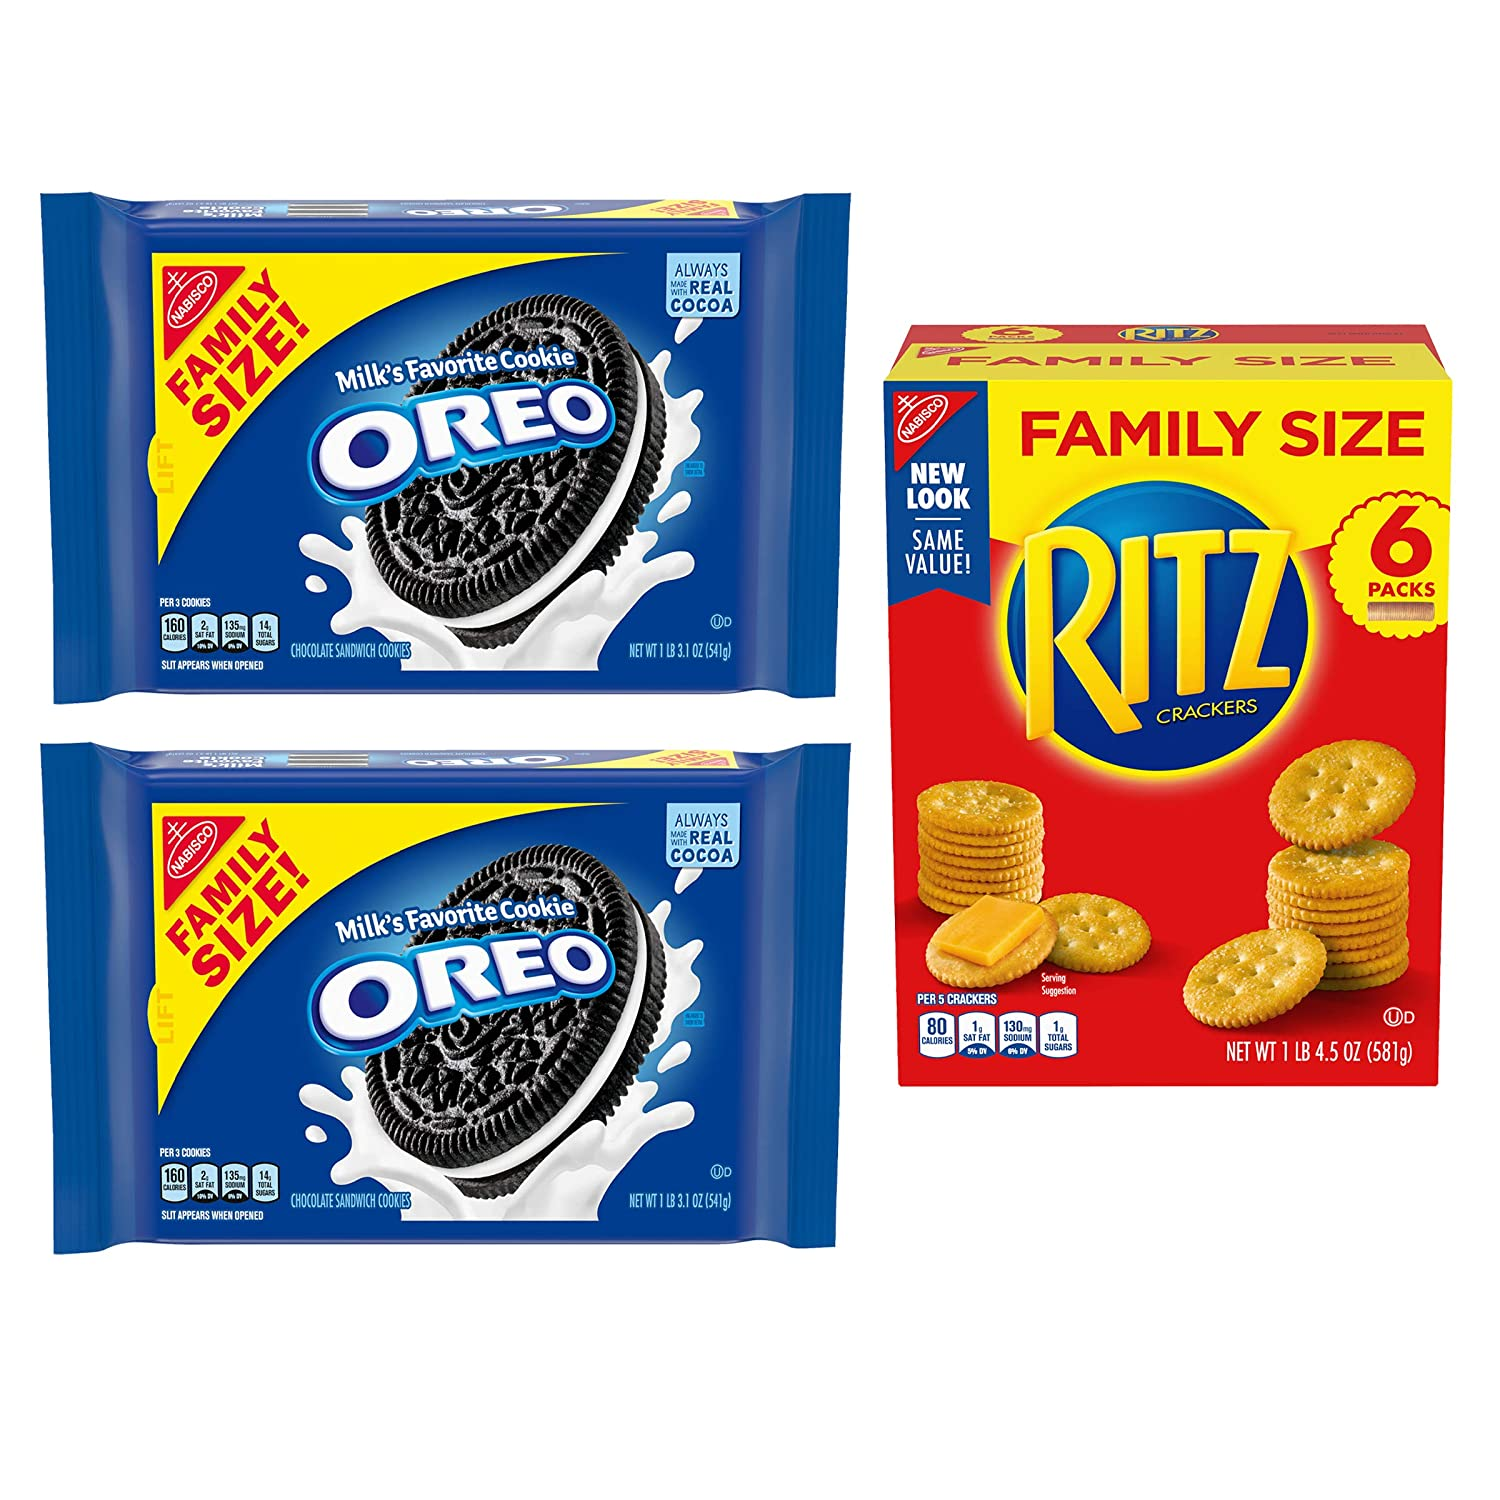 B083K1BHSH OREO Cookies & RITZ Crackers Variety Pack, Family Size, 3 Packs 81g2A62CKrL